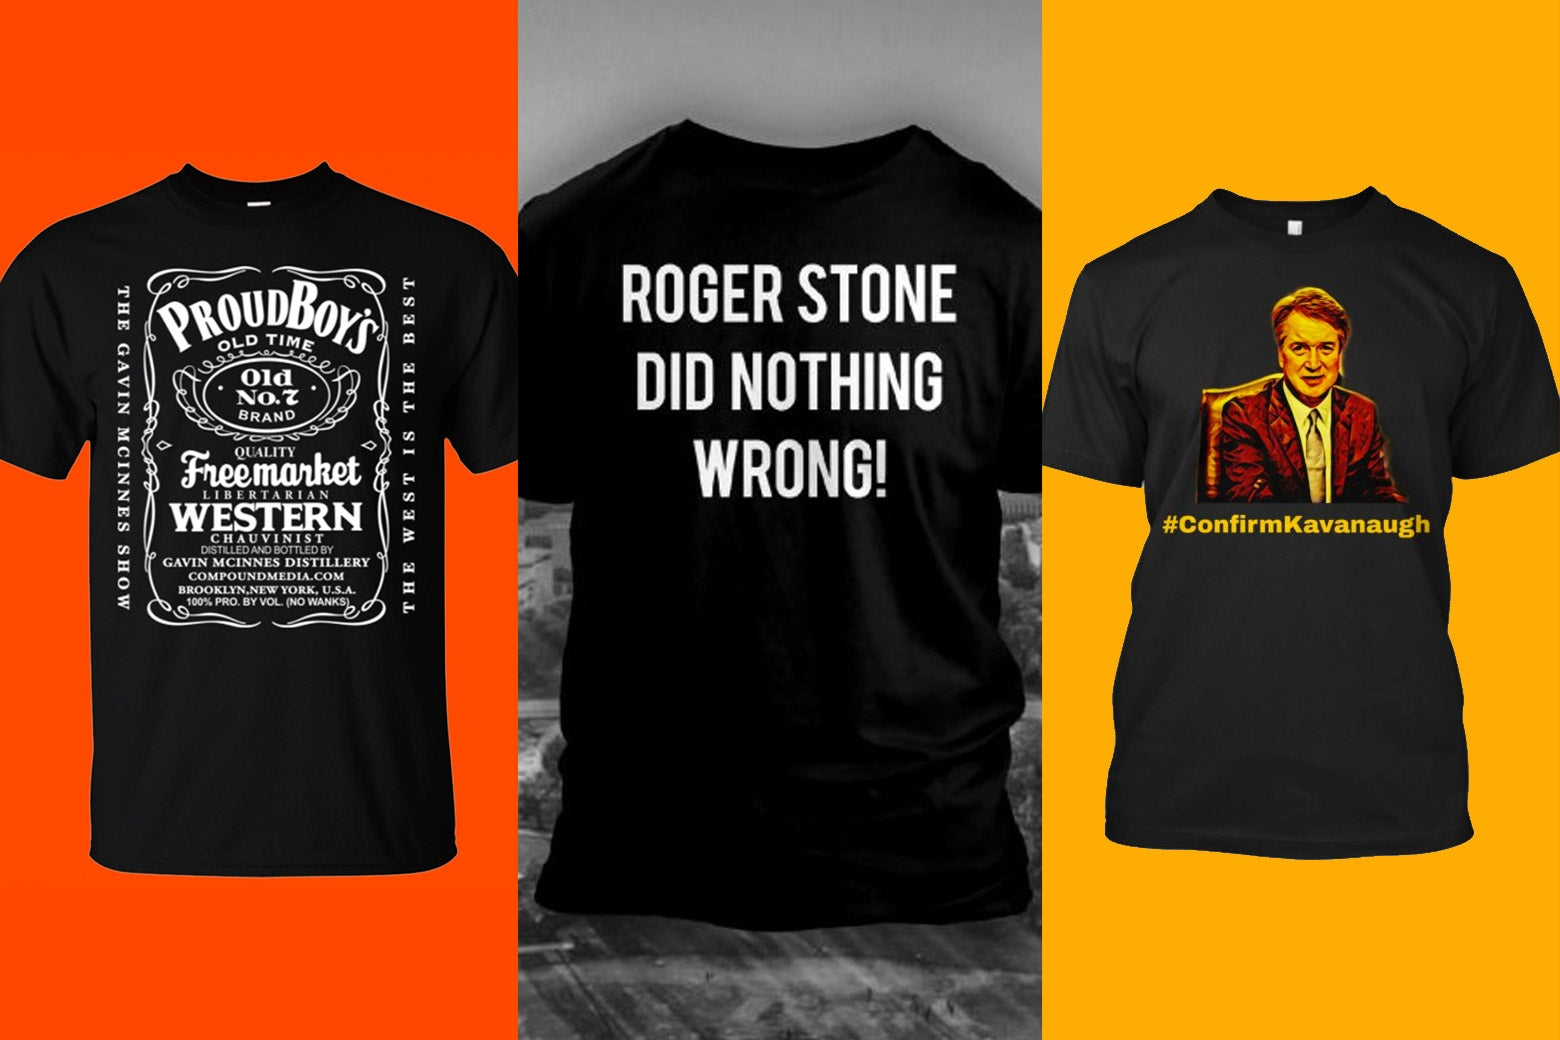 T-shirts with slogans in favor of the Proud Boys, Roger Stone, and Brett Kavanaugh.